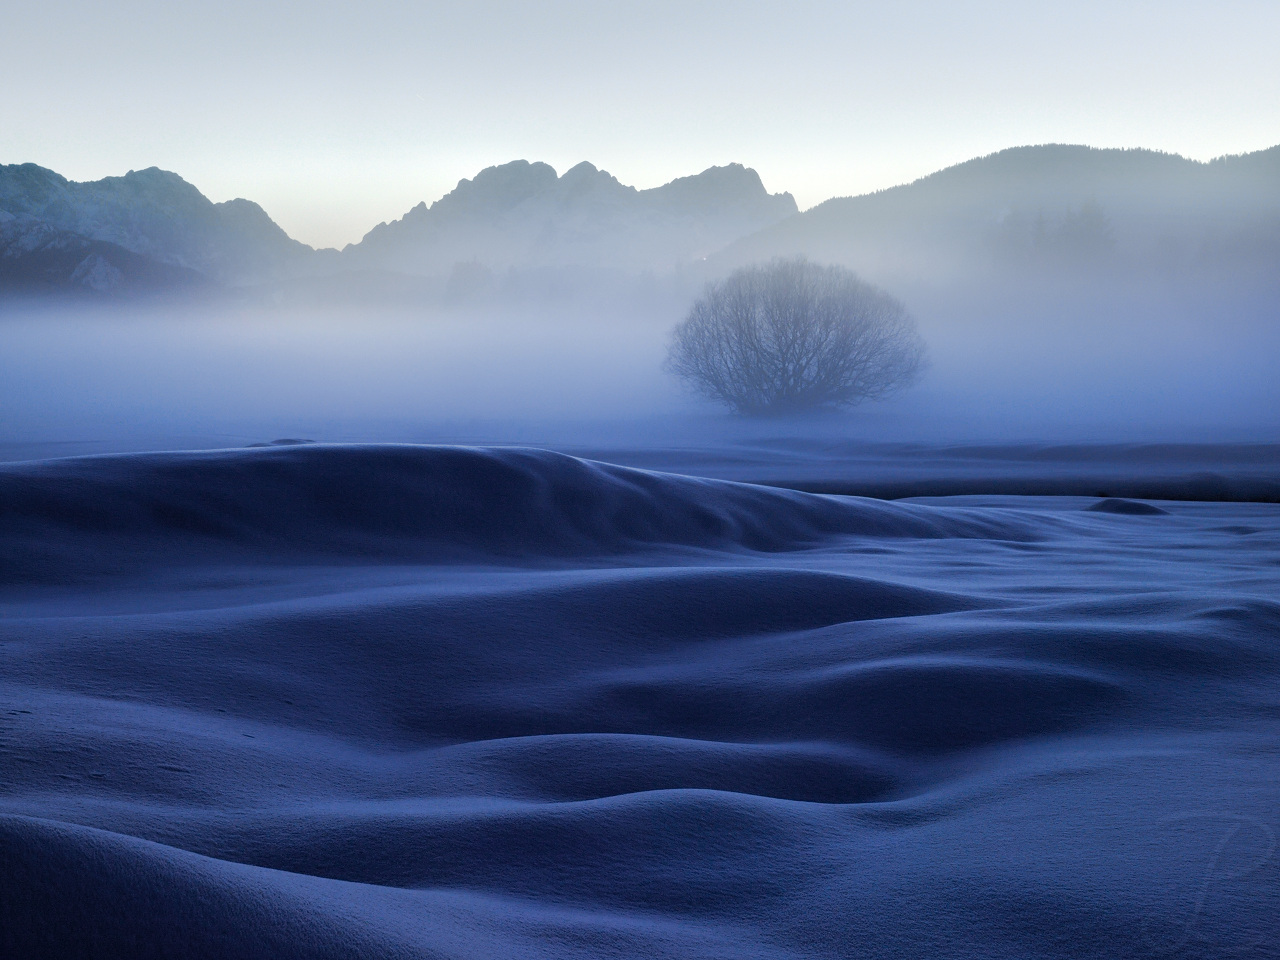 Cloaked in Mist by da-phil